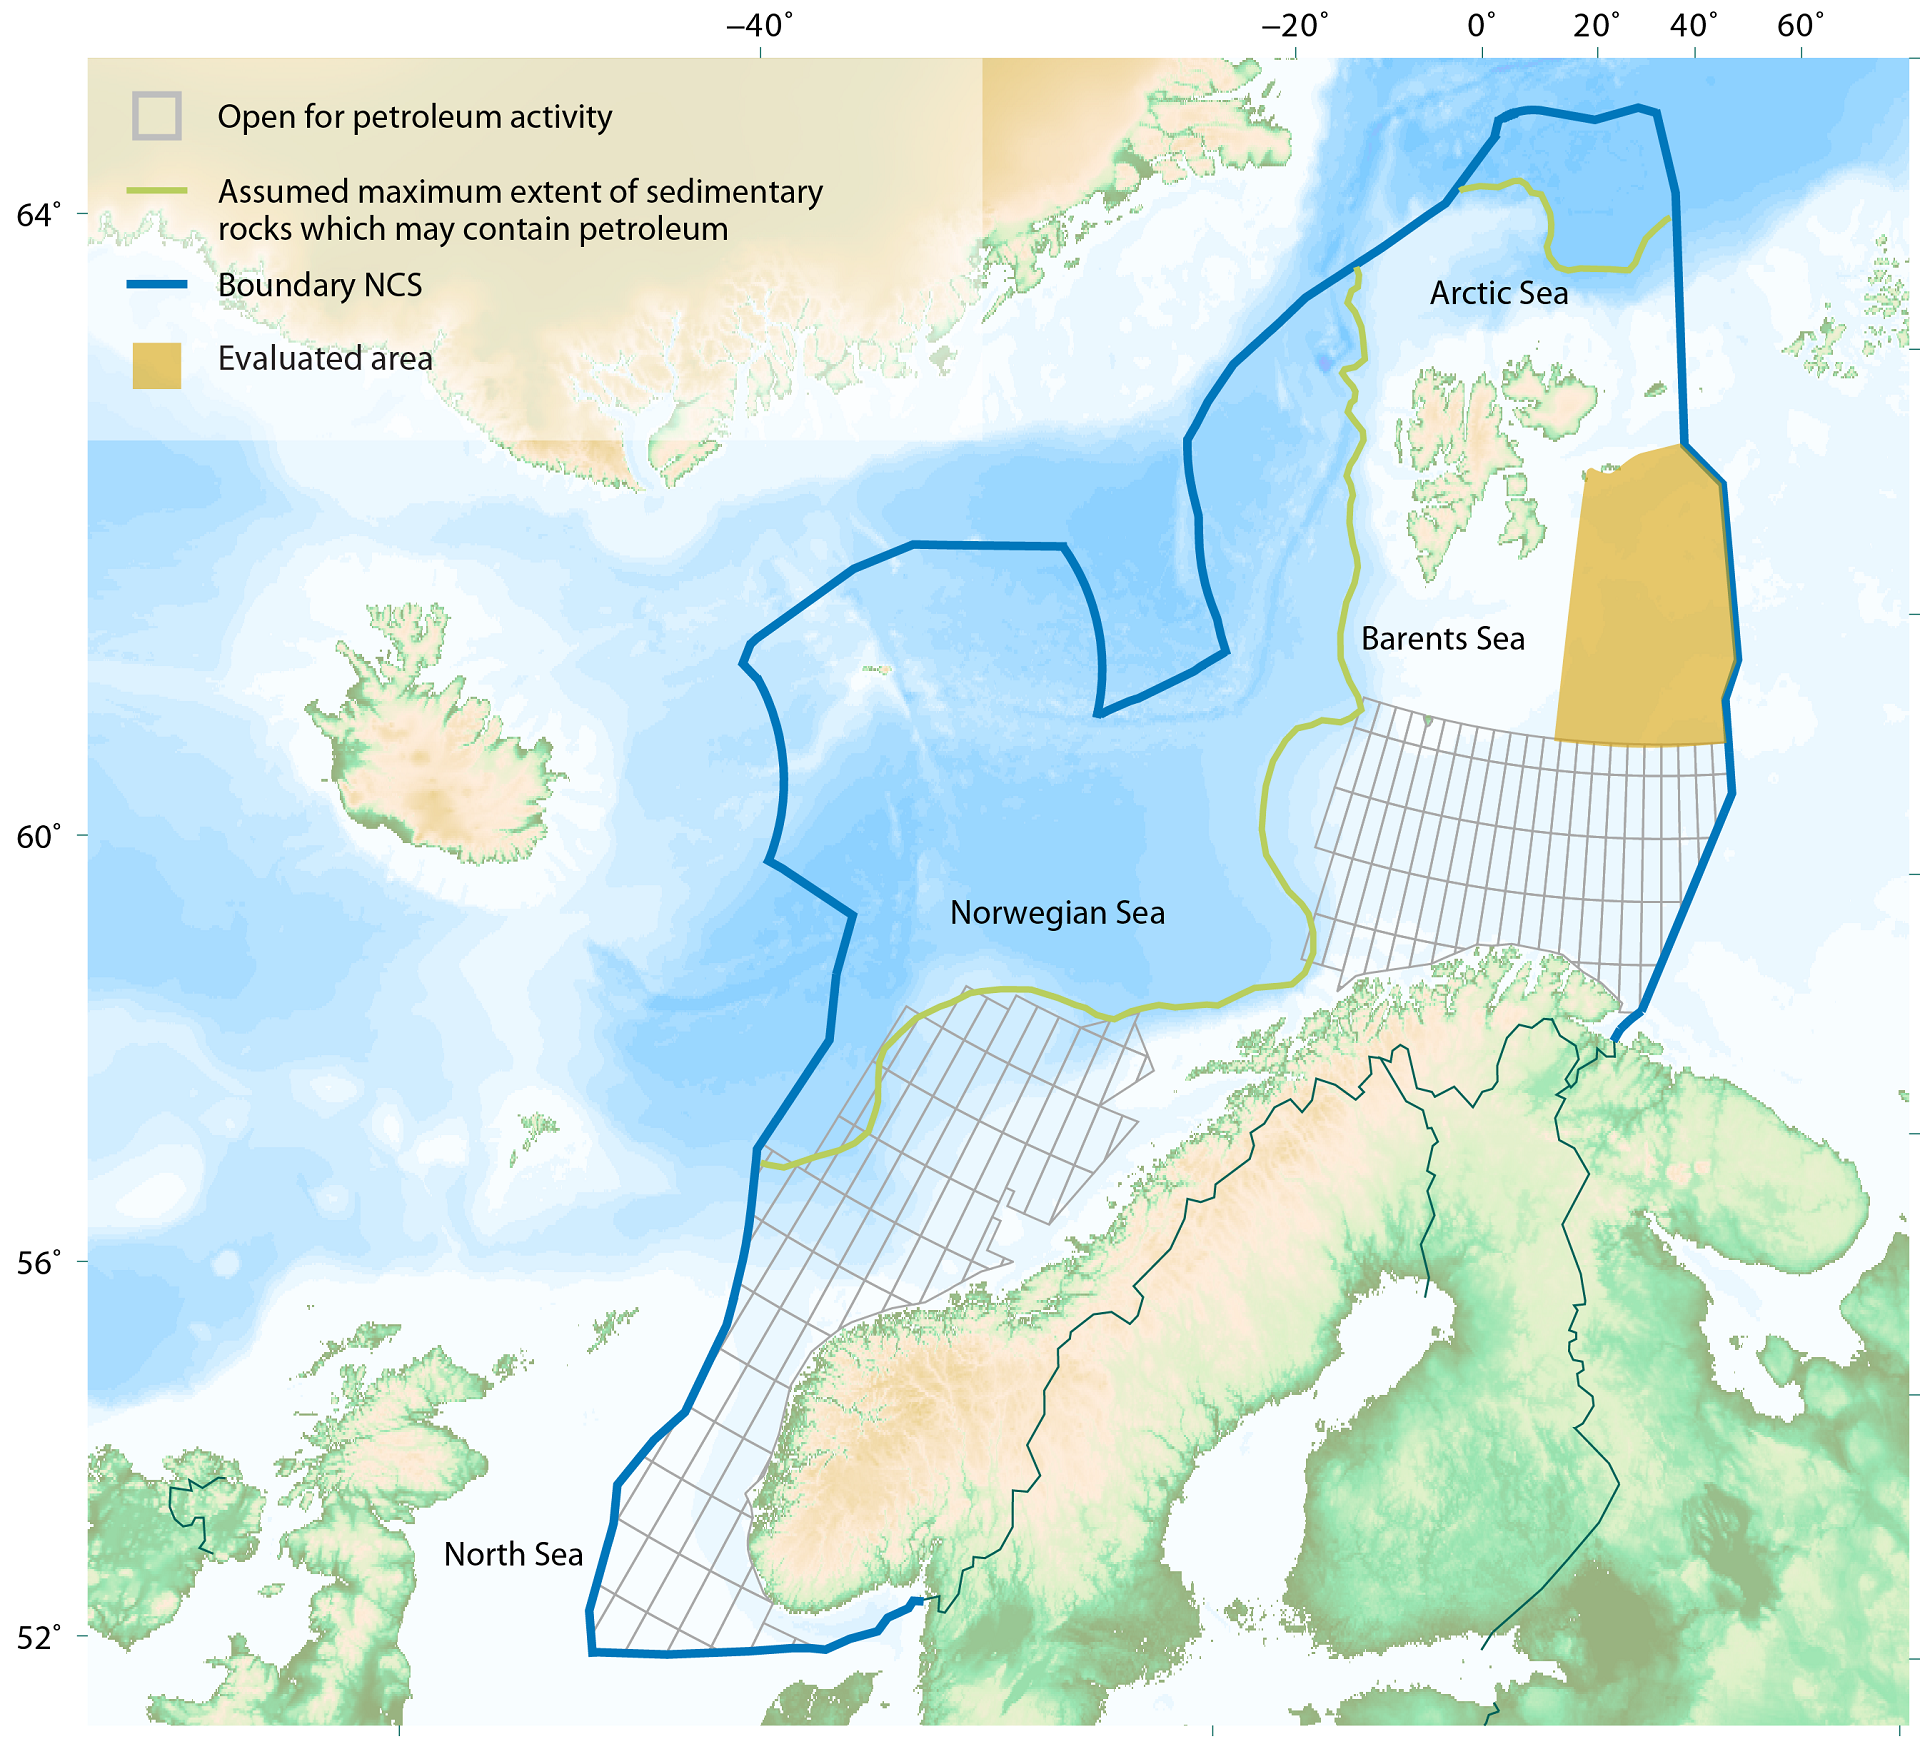 Doubling the resource estimate for the Barents Sea - The ... on map of marginal seas, map of l'anse aux meadows, map of humboldt current, map of the arctic ocean, map of gulf of mexico, map of kiev, map of gulf of aden, map of bergen, map of narvik, map of upper peninsula of michigan, map of oslo, map of norway, map of arctic circle, map of strait of malacca, map of gulf of venezuela, map of dardanelles, map of fernando de noronha, map of bay of biscay, map of persian gulf, map of english channel,